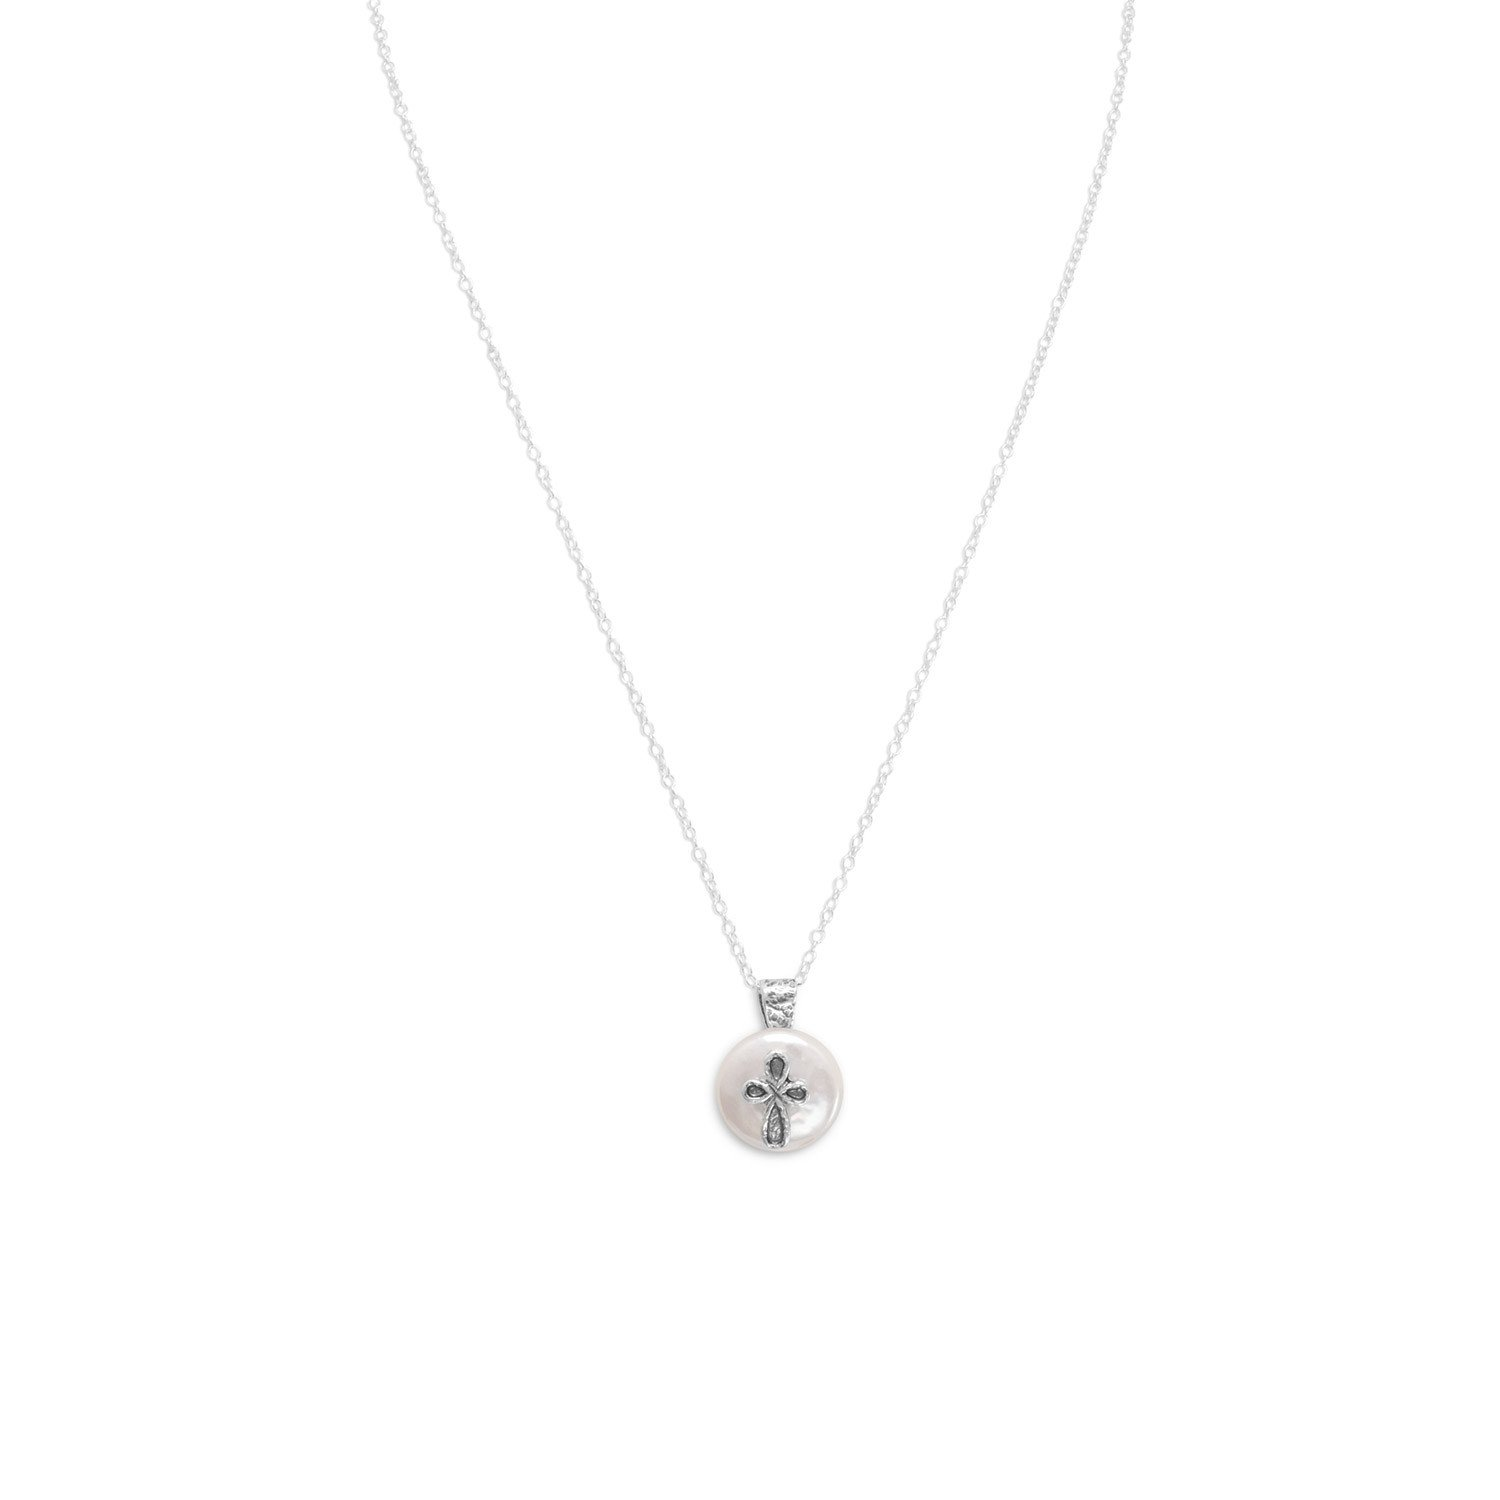 17.5″ Cultured Freshwater Pearl with Cross Design Necklace